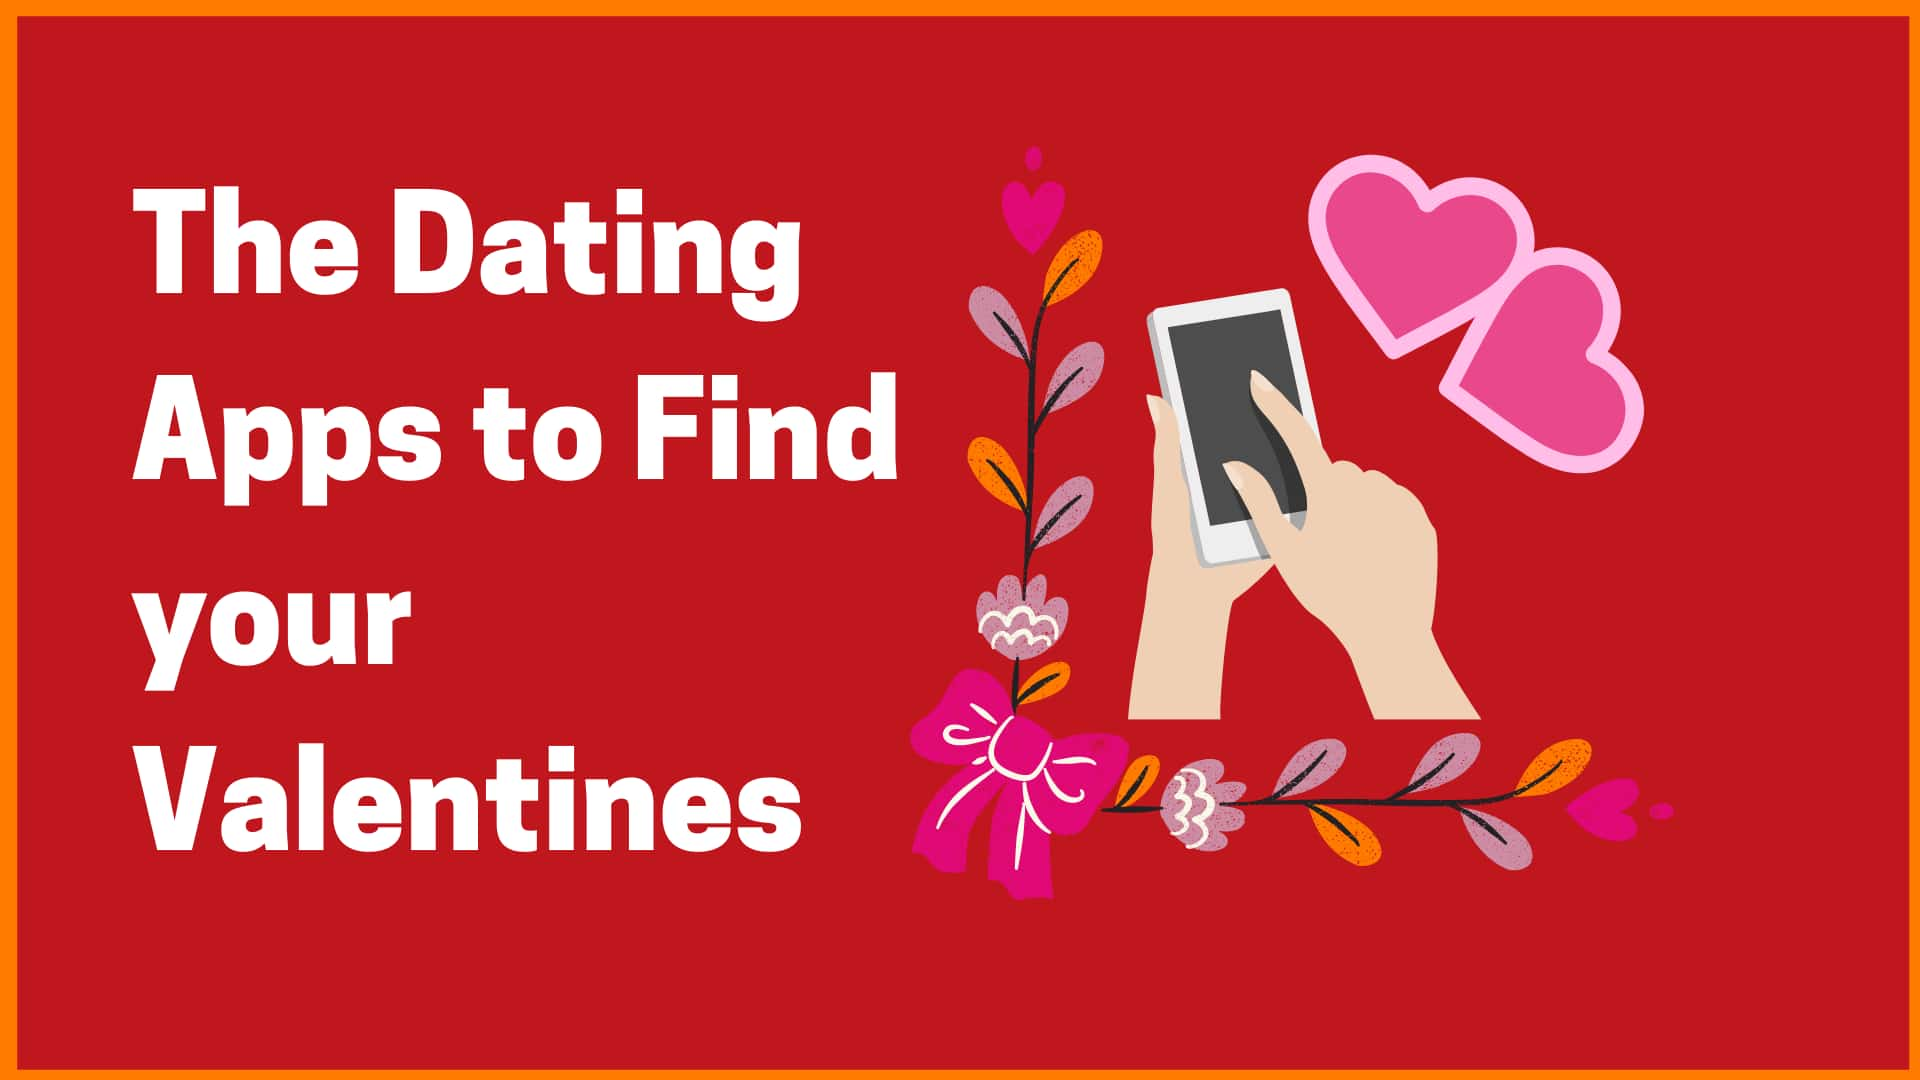 The Dating Apps to find your Valentines